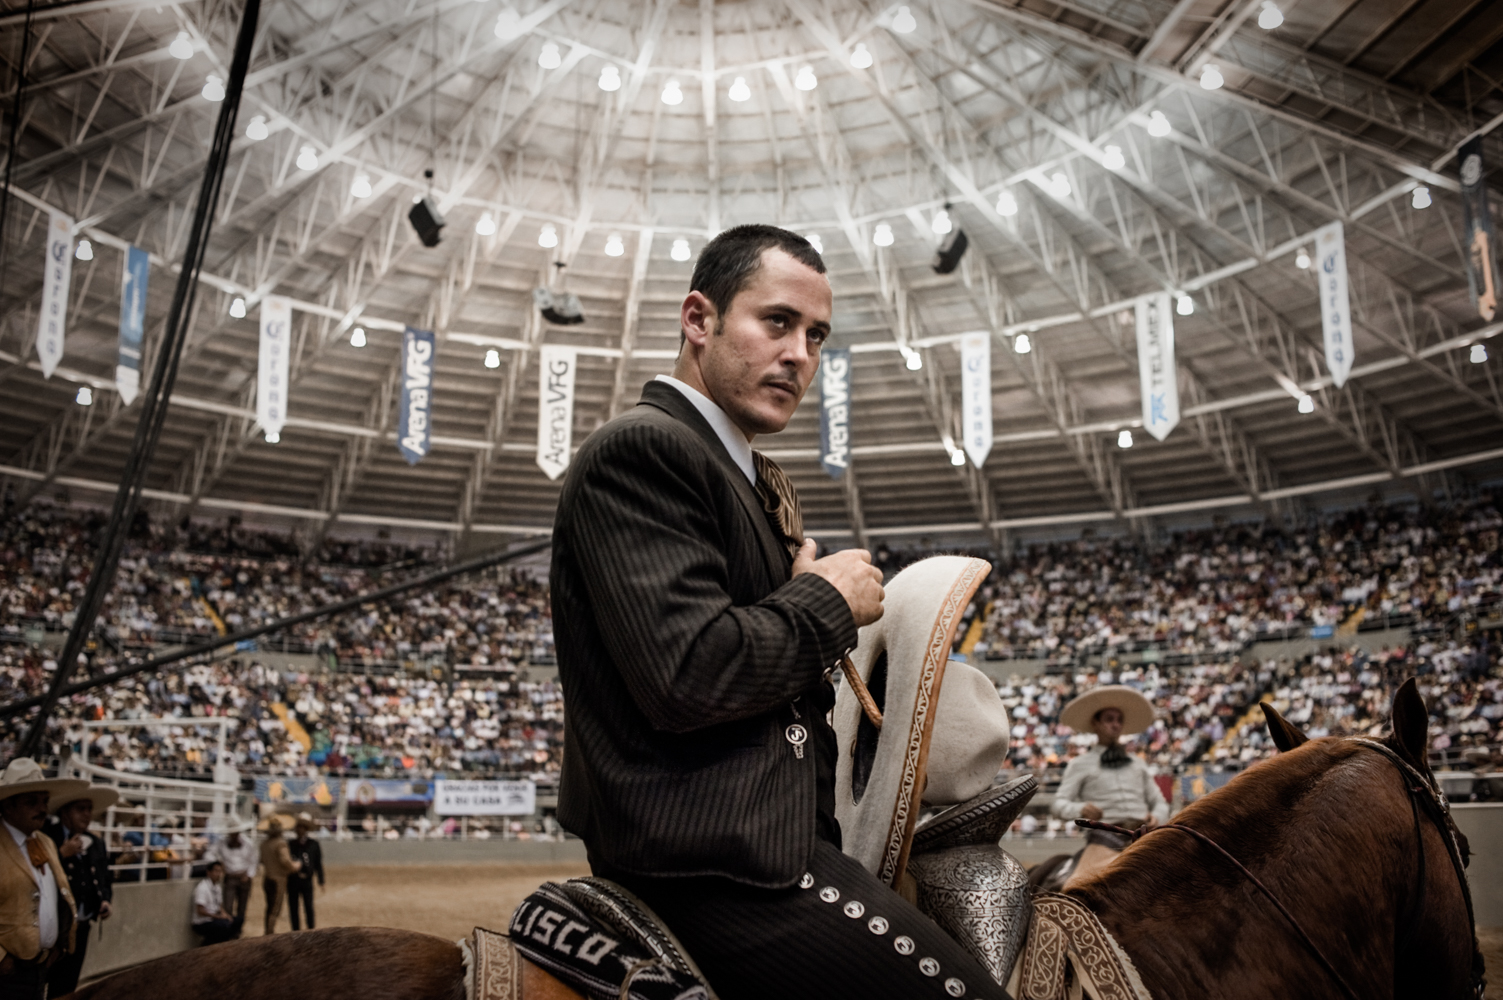 A Charro about to enter the arena to compete